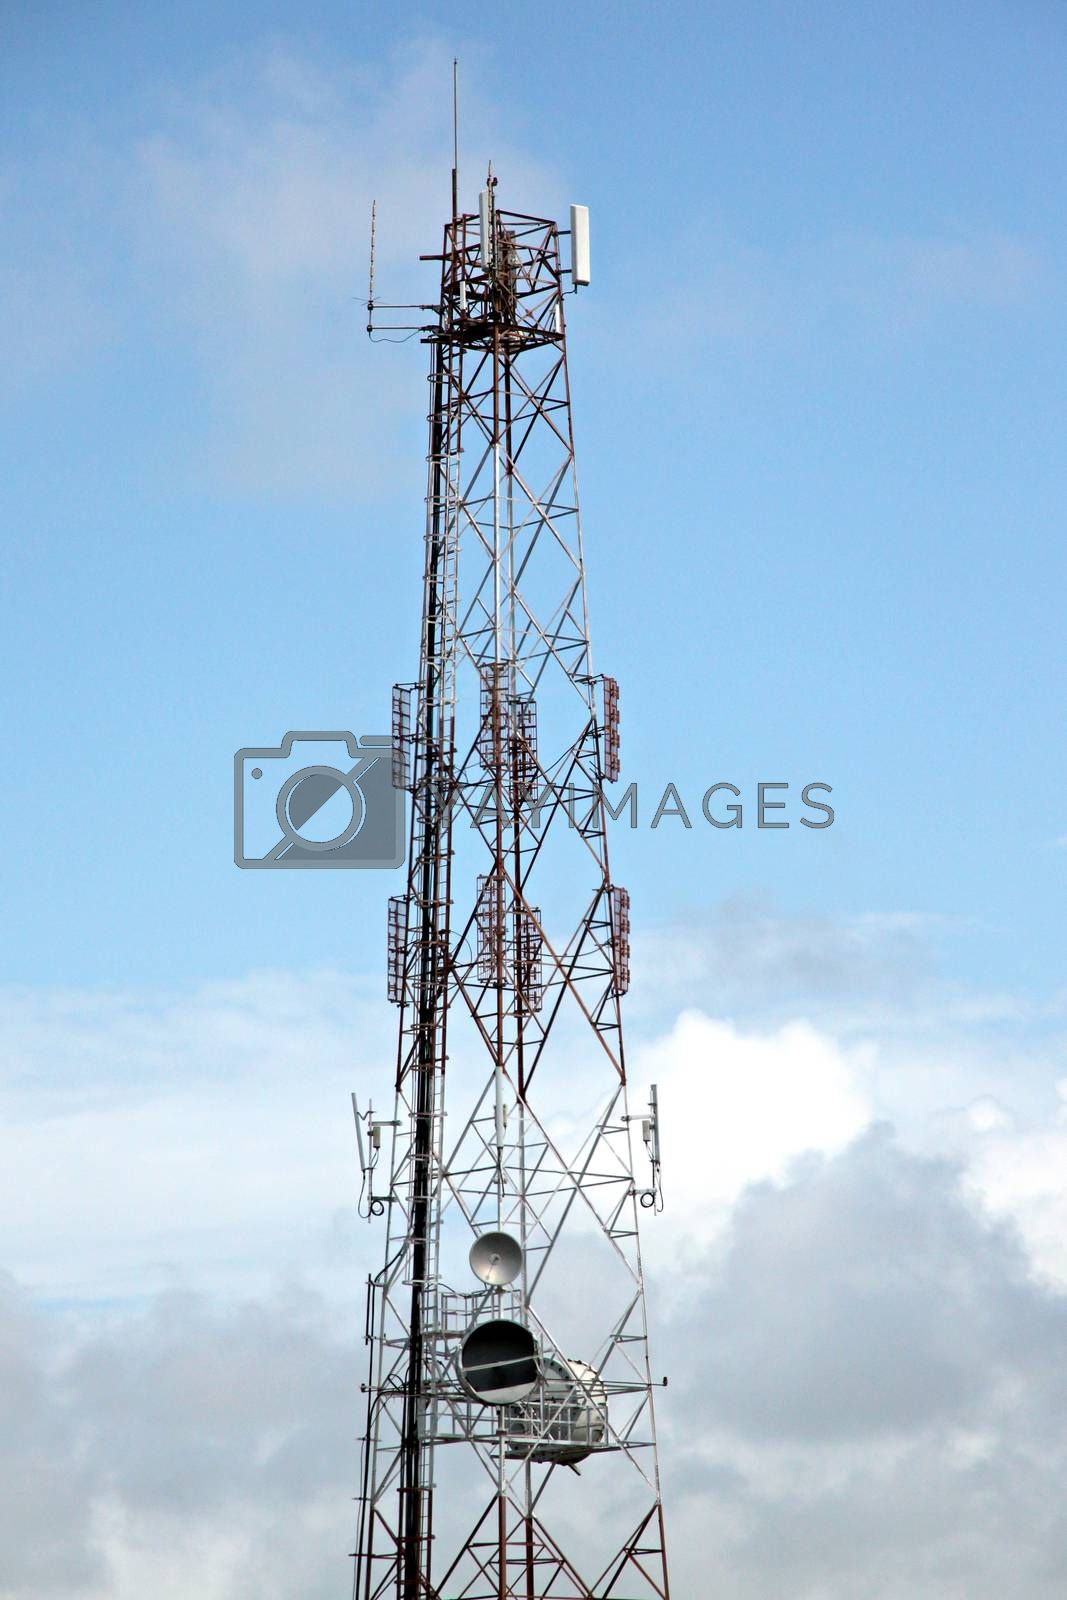 Antenna array telephone. by PiyaPhoto